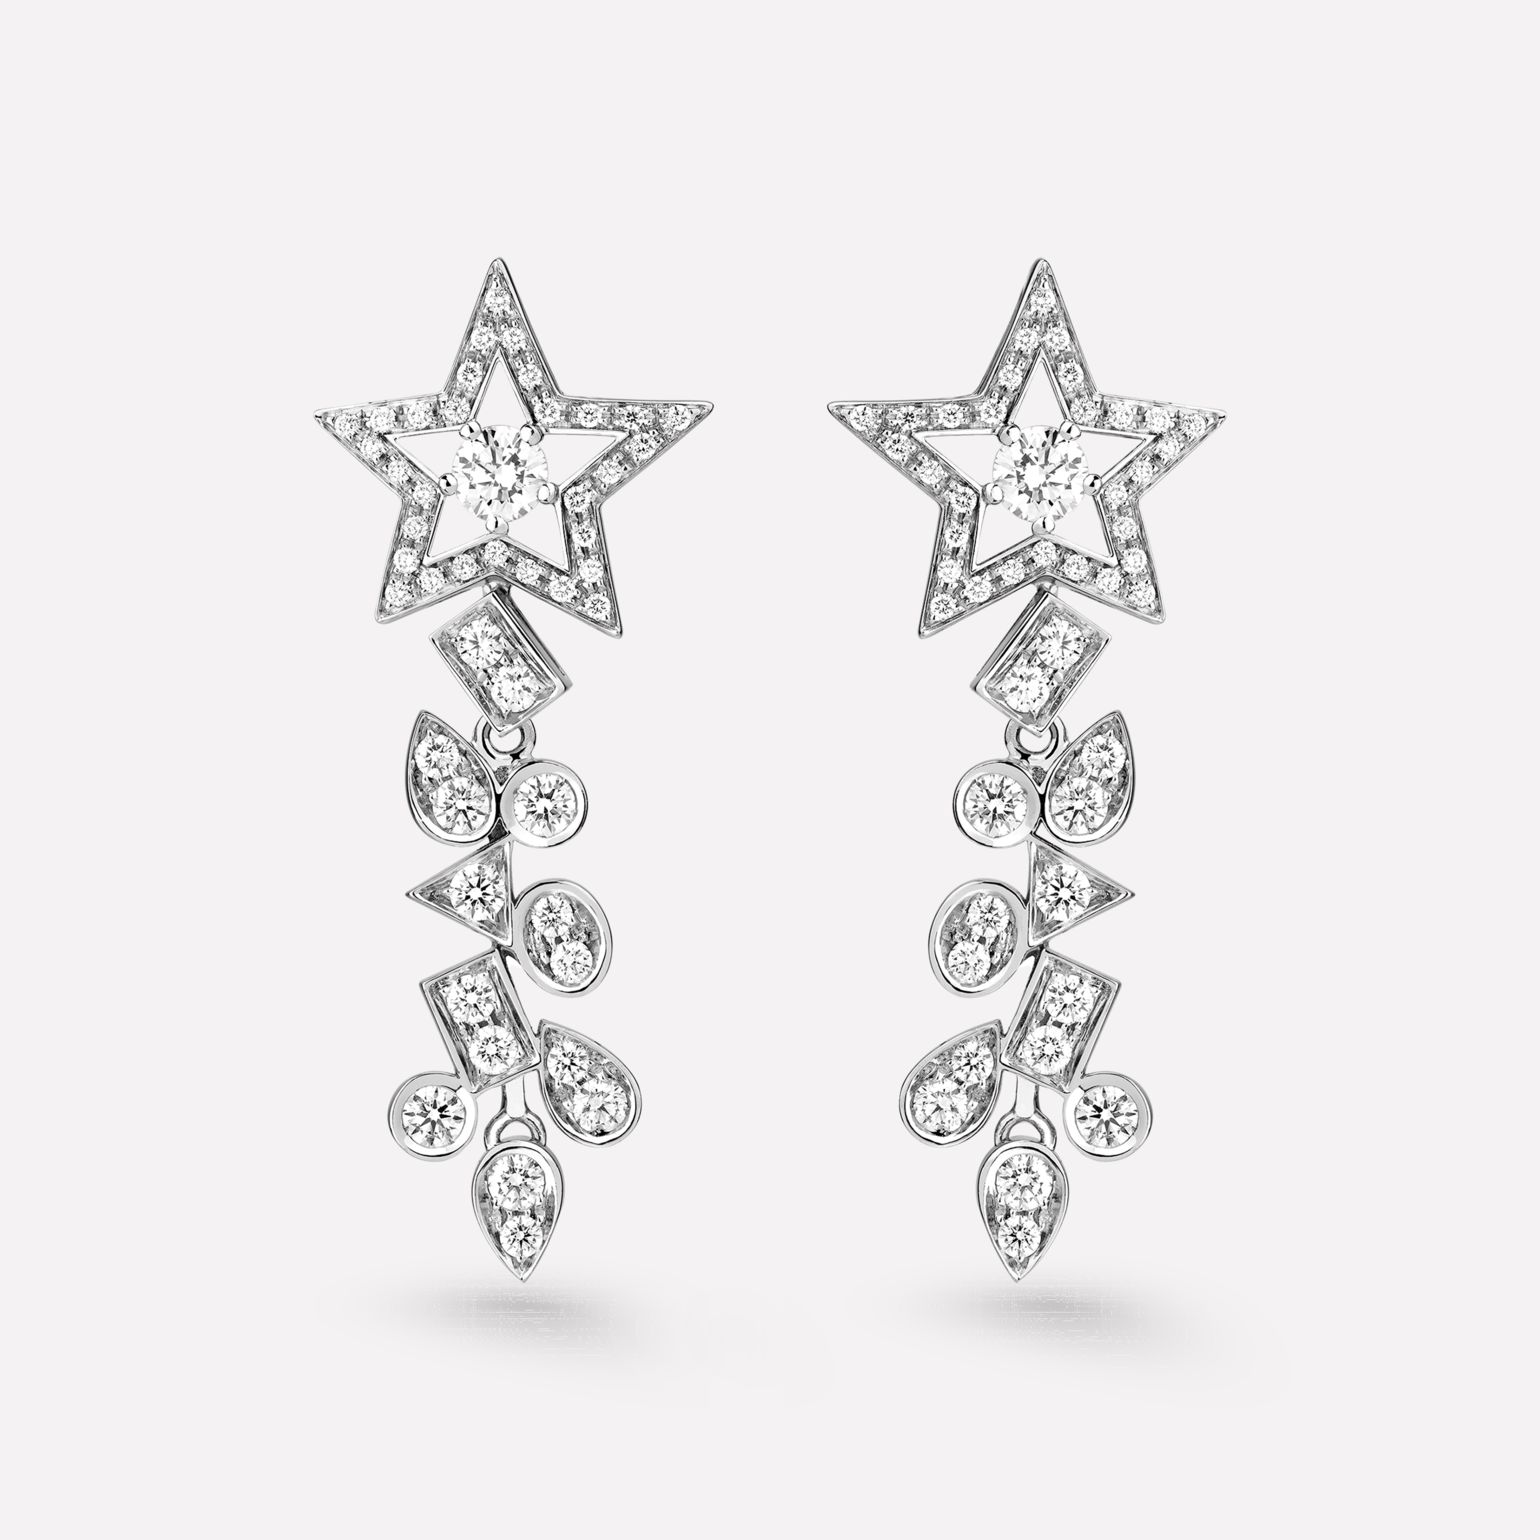 Comète Earrings Star earrings in 18K white gold, diamonds and central diamonds